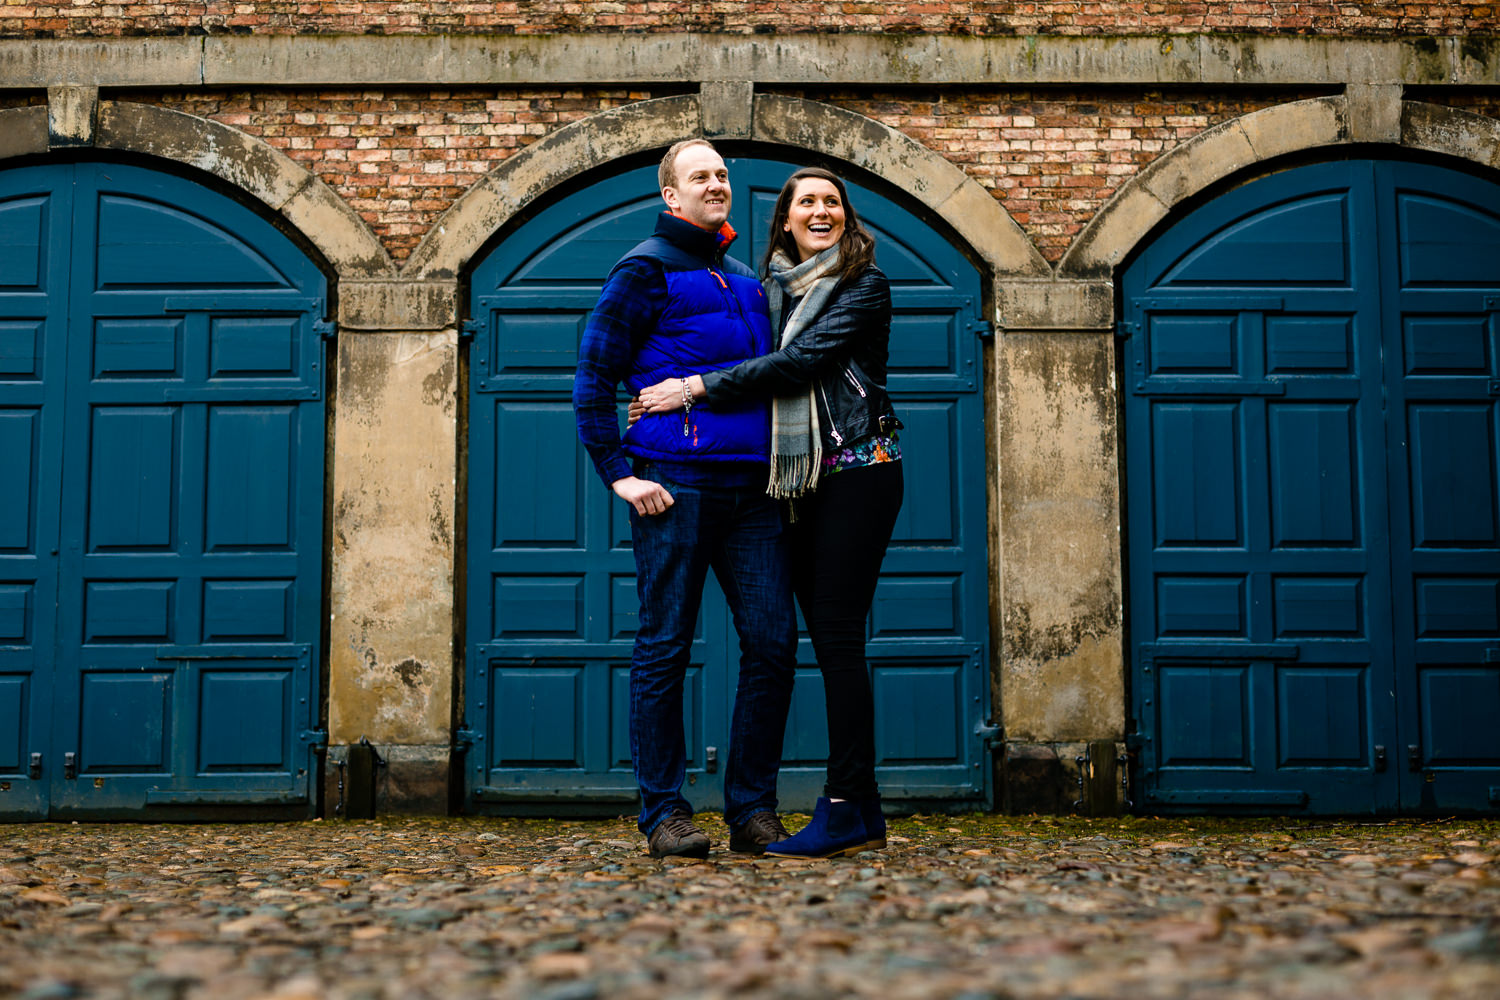 Dunham Massey pre wedding shoot, a couple laughing and cuddling in front of the blue coach house doors.